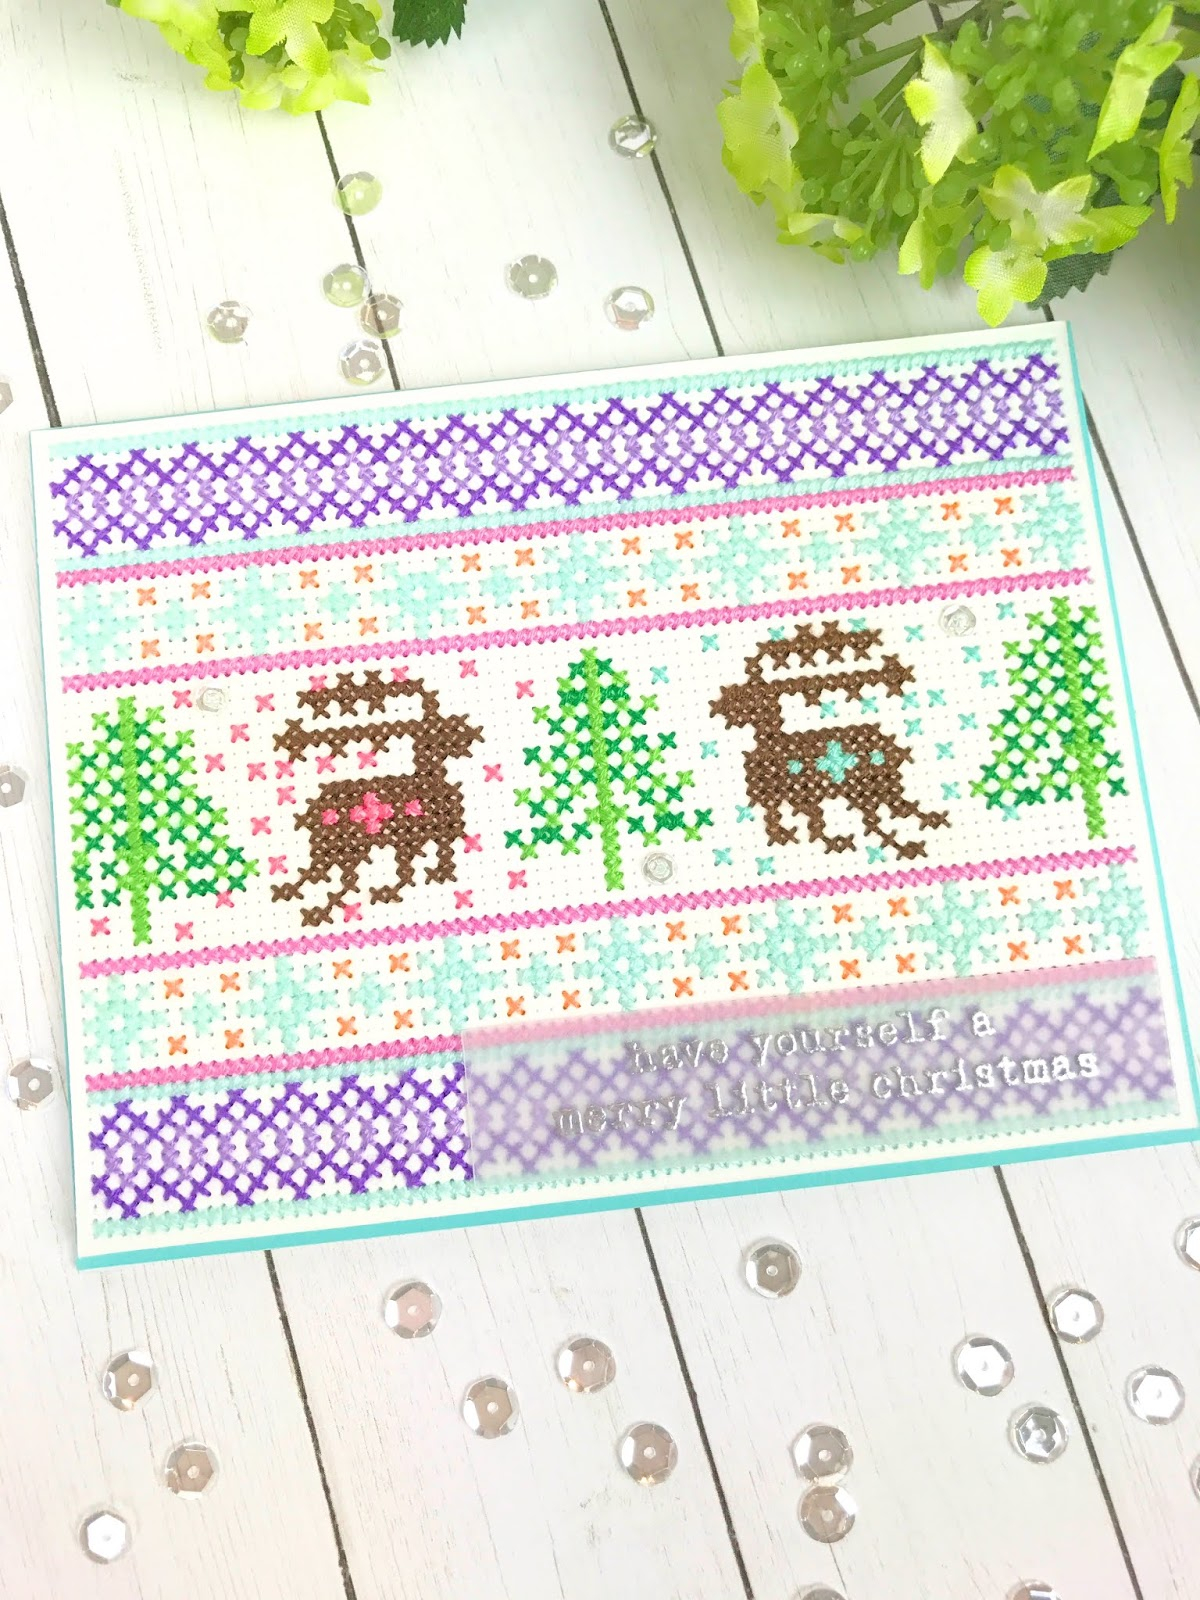 Paper Embroidery Cards Free Patterns Nordic Deer Cross Stitch Card On Altenew Cross Stitch Canvas With